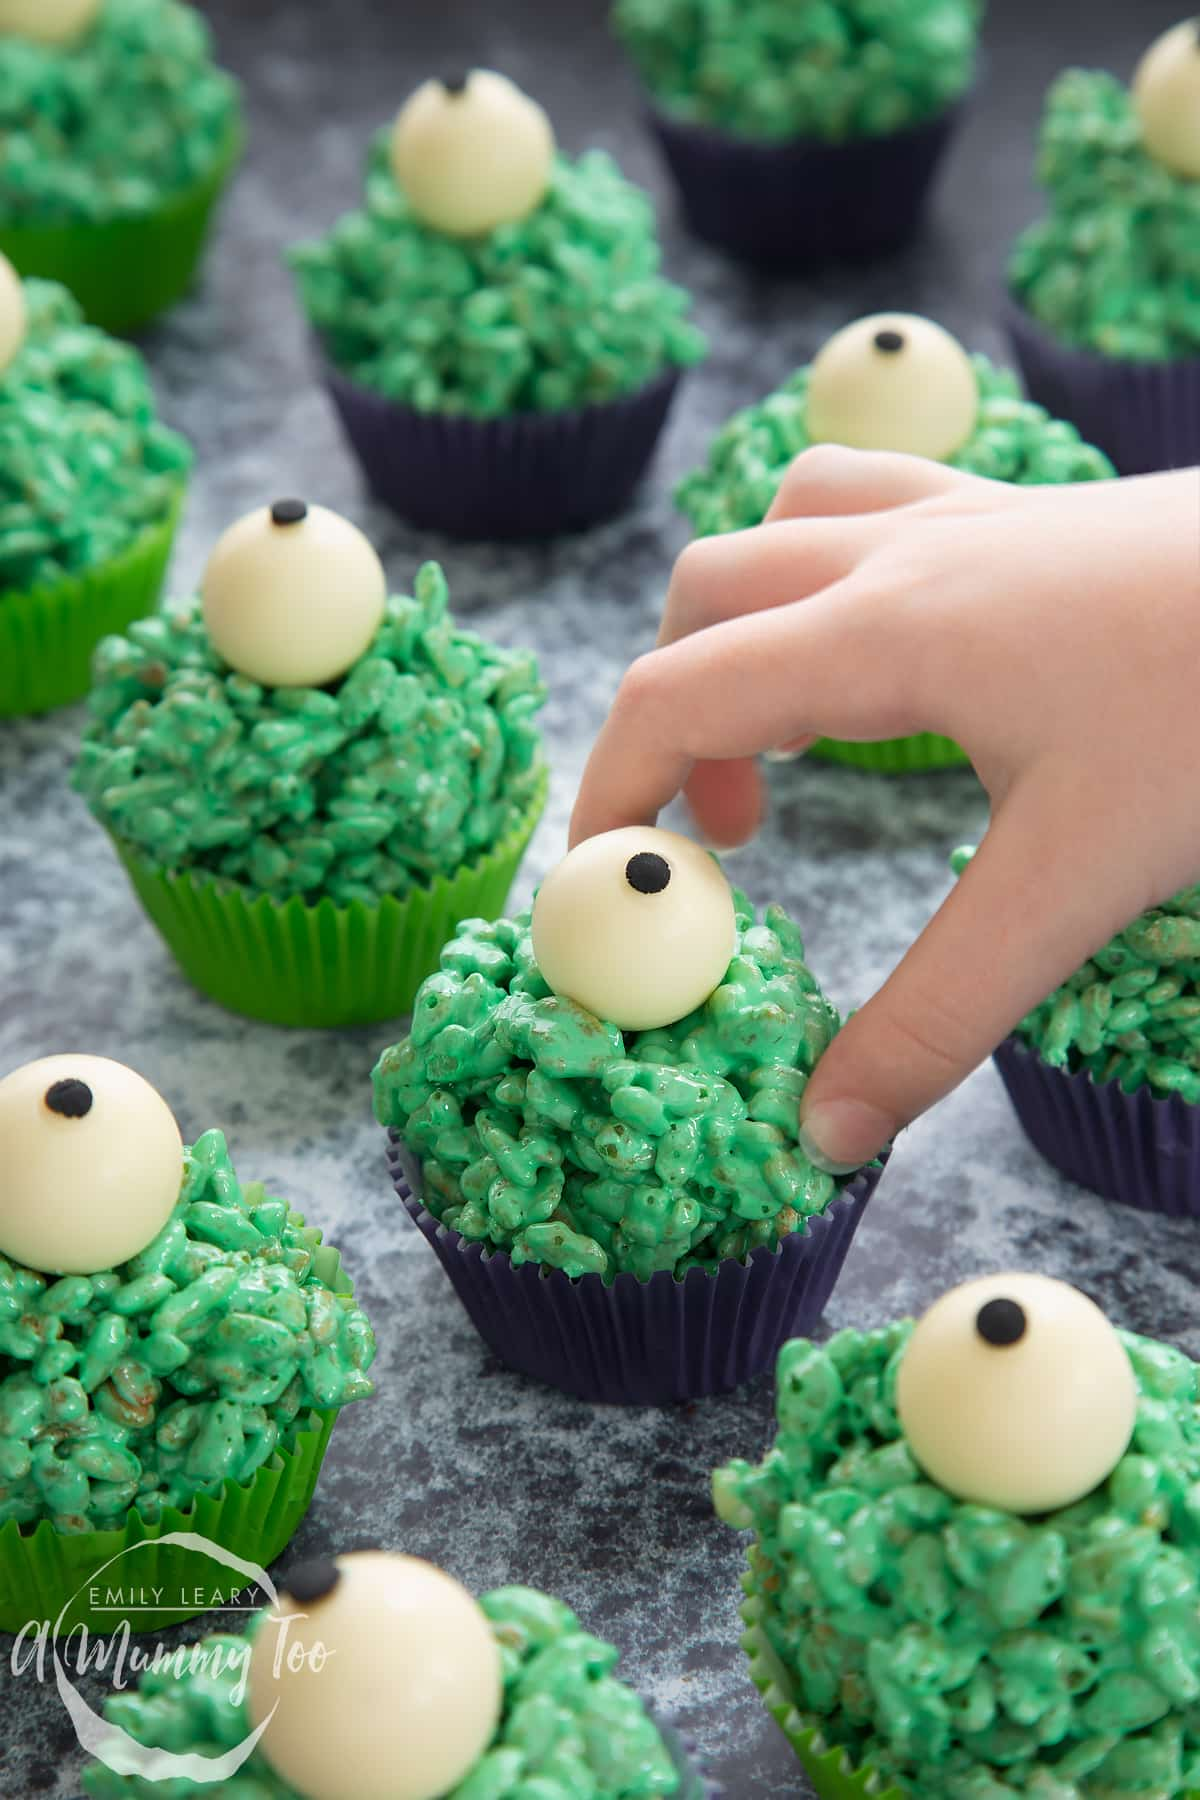 Halloween crispy cakes in purple and green cupcake cases. The crispy cakes are dyed green and topped with white chocolate spheres decorated to look like eyeballs. A little hand reaches for one.